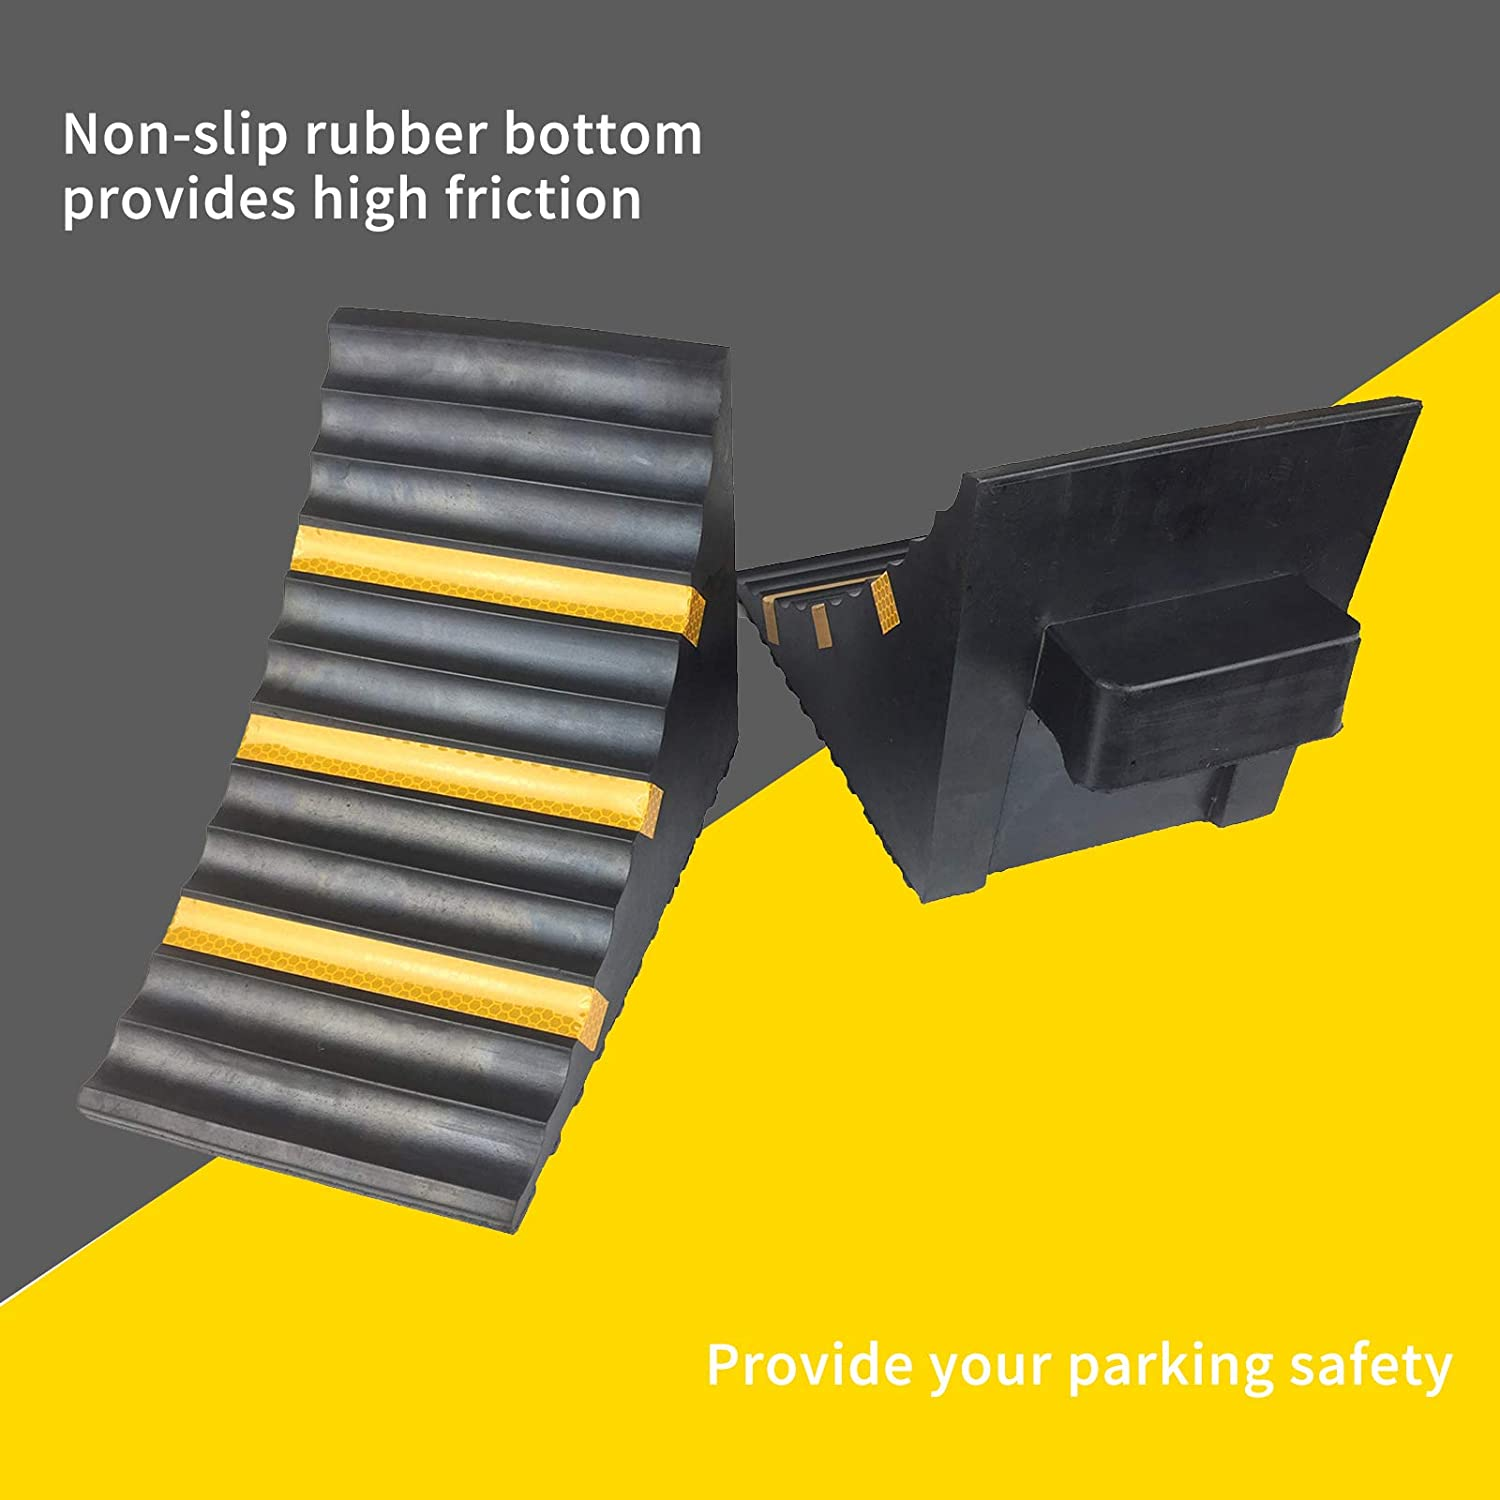 ROBLOCK Rubber Wheel Chocks Heavy Duty Trailer Chock with Yellow Reflective Strip for Truck Camper RV 2 Pack Black 11.6 Length x 6.3 Width x 7.5 Height